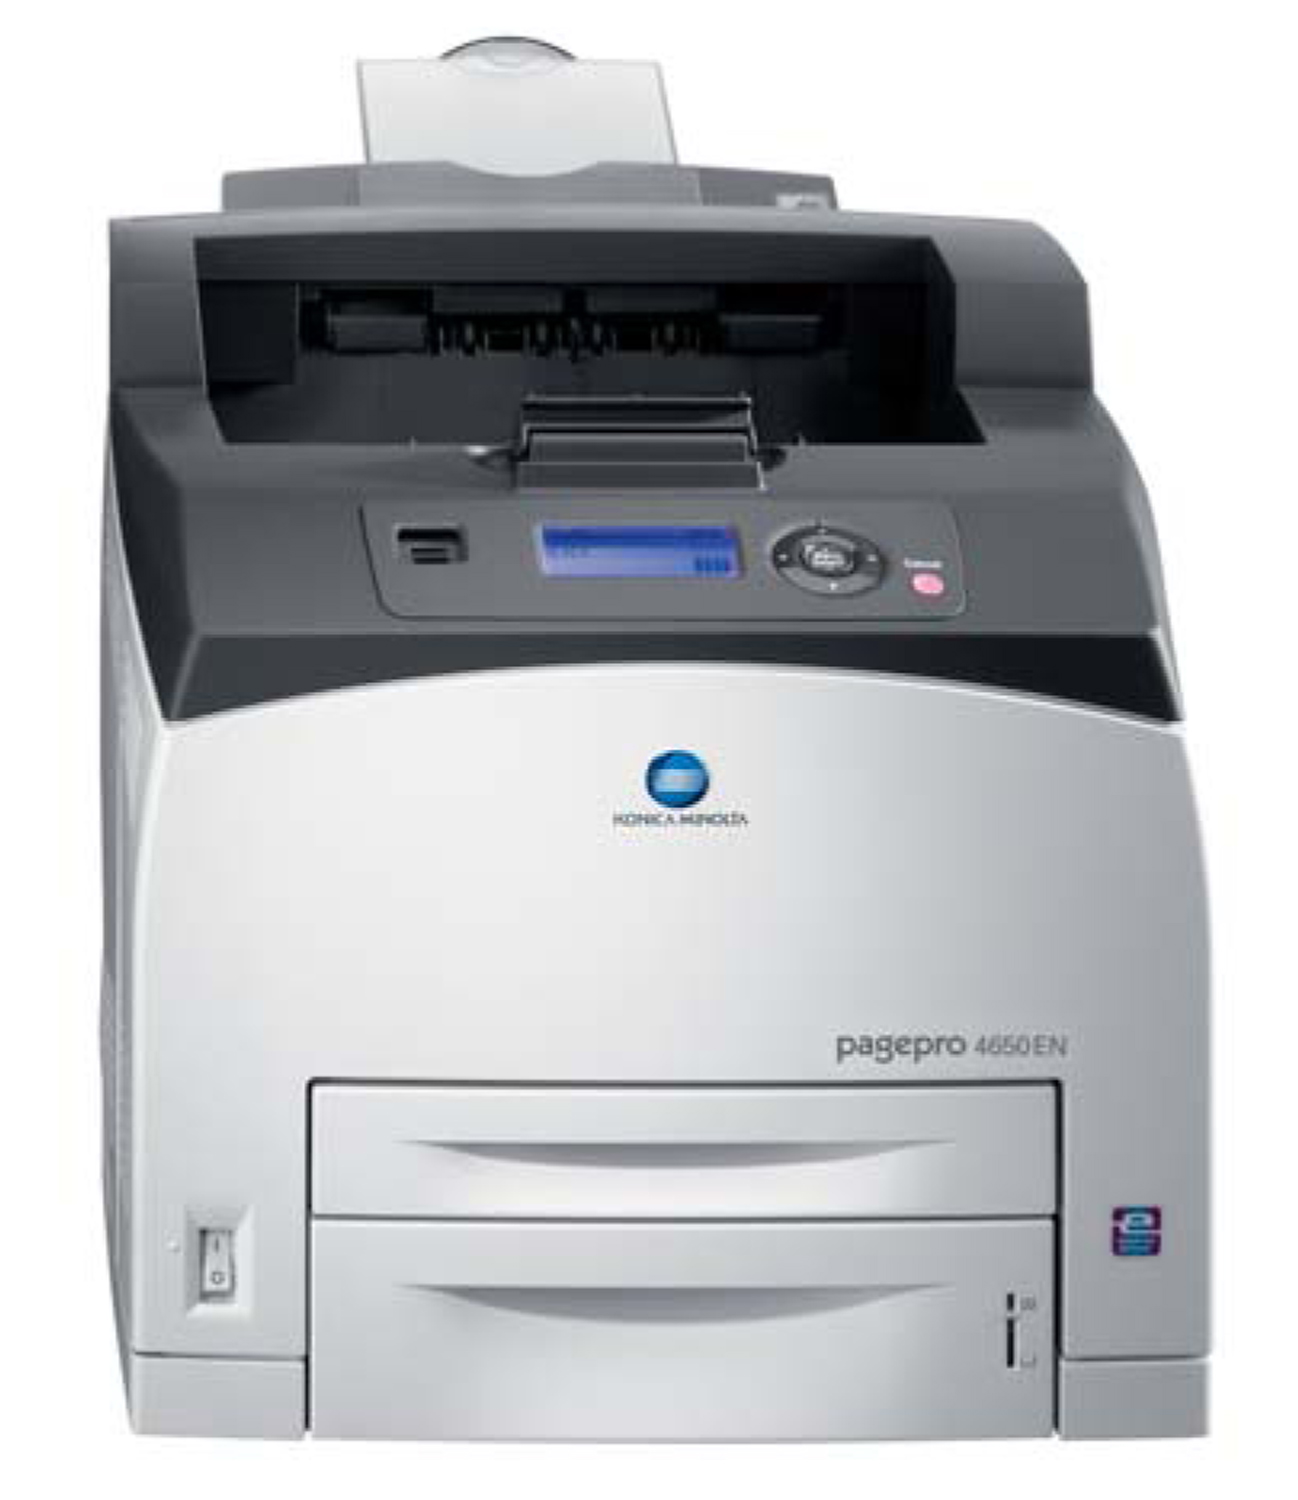 Pagepro 4650en Direct Micro Imaging Solutions Corporation